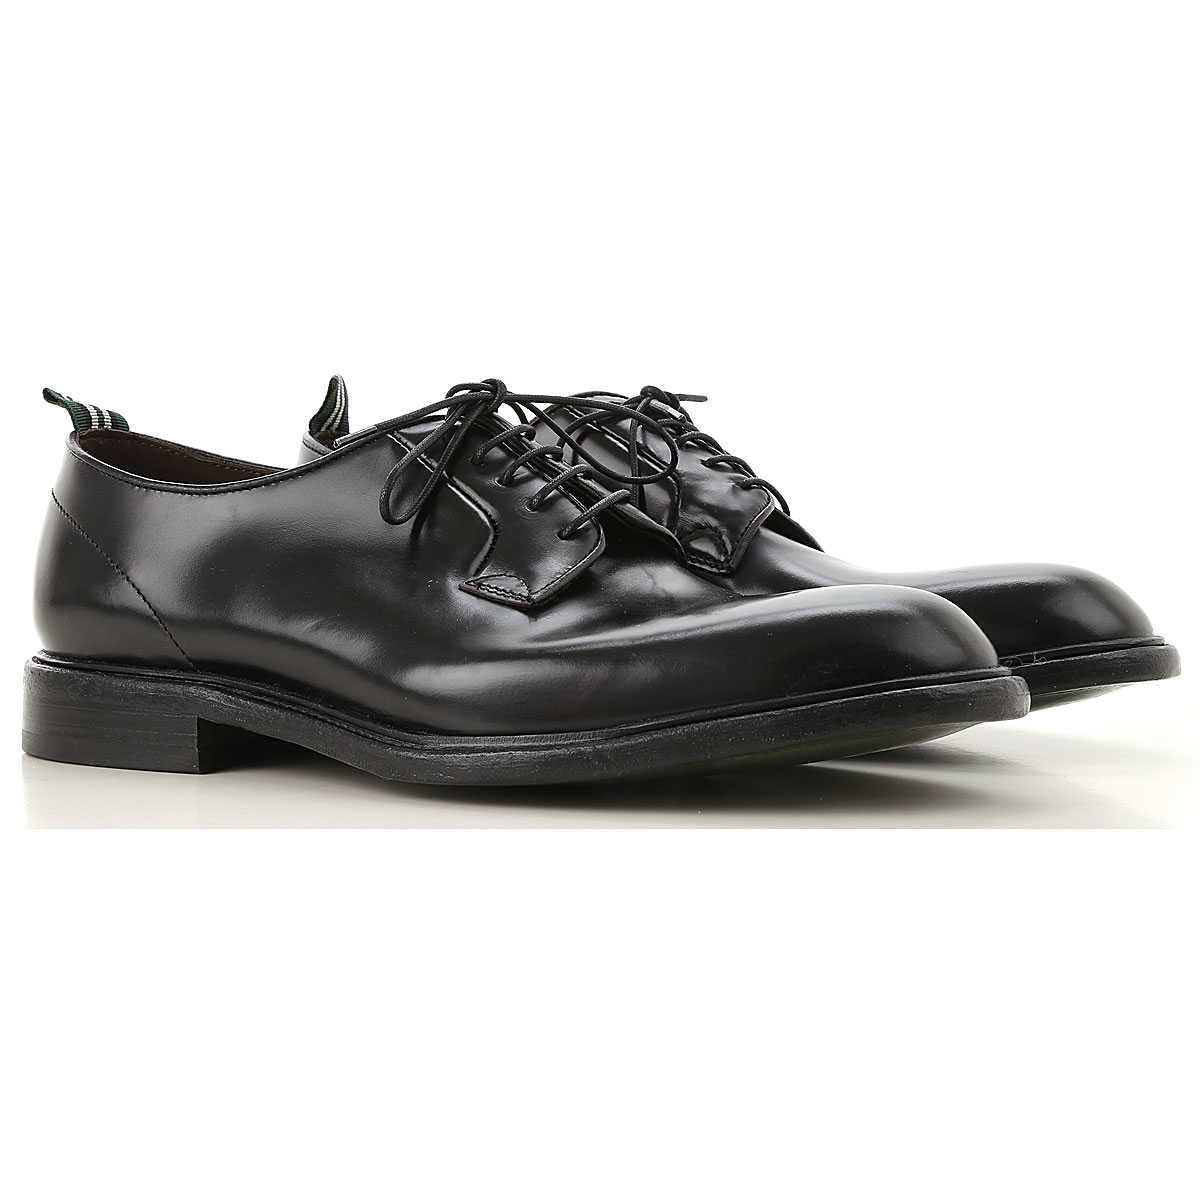 Green George Lace Up Shoes for Men Oxfords Derbies and Brogues On Sale - GOOFASH